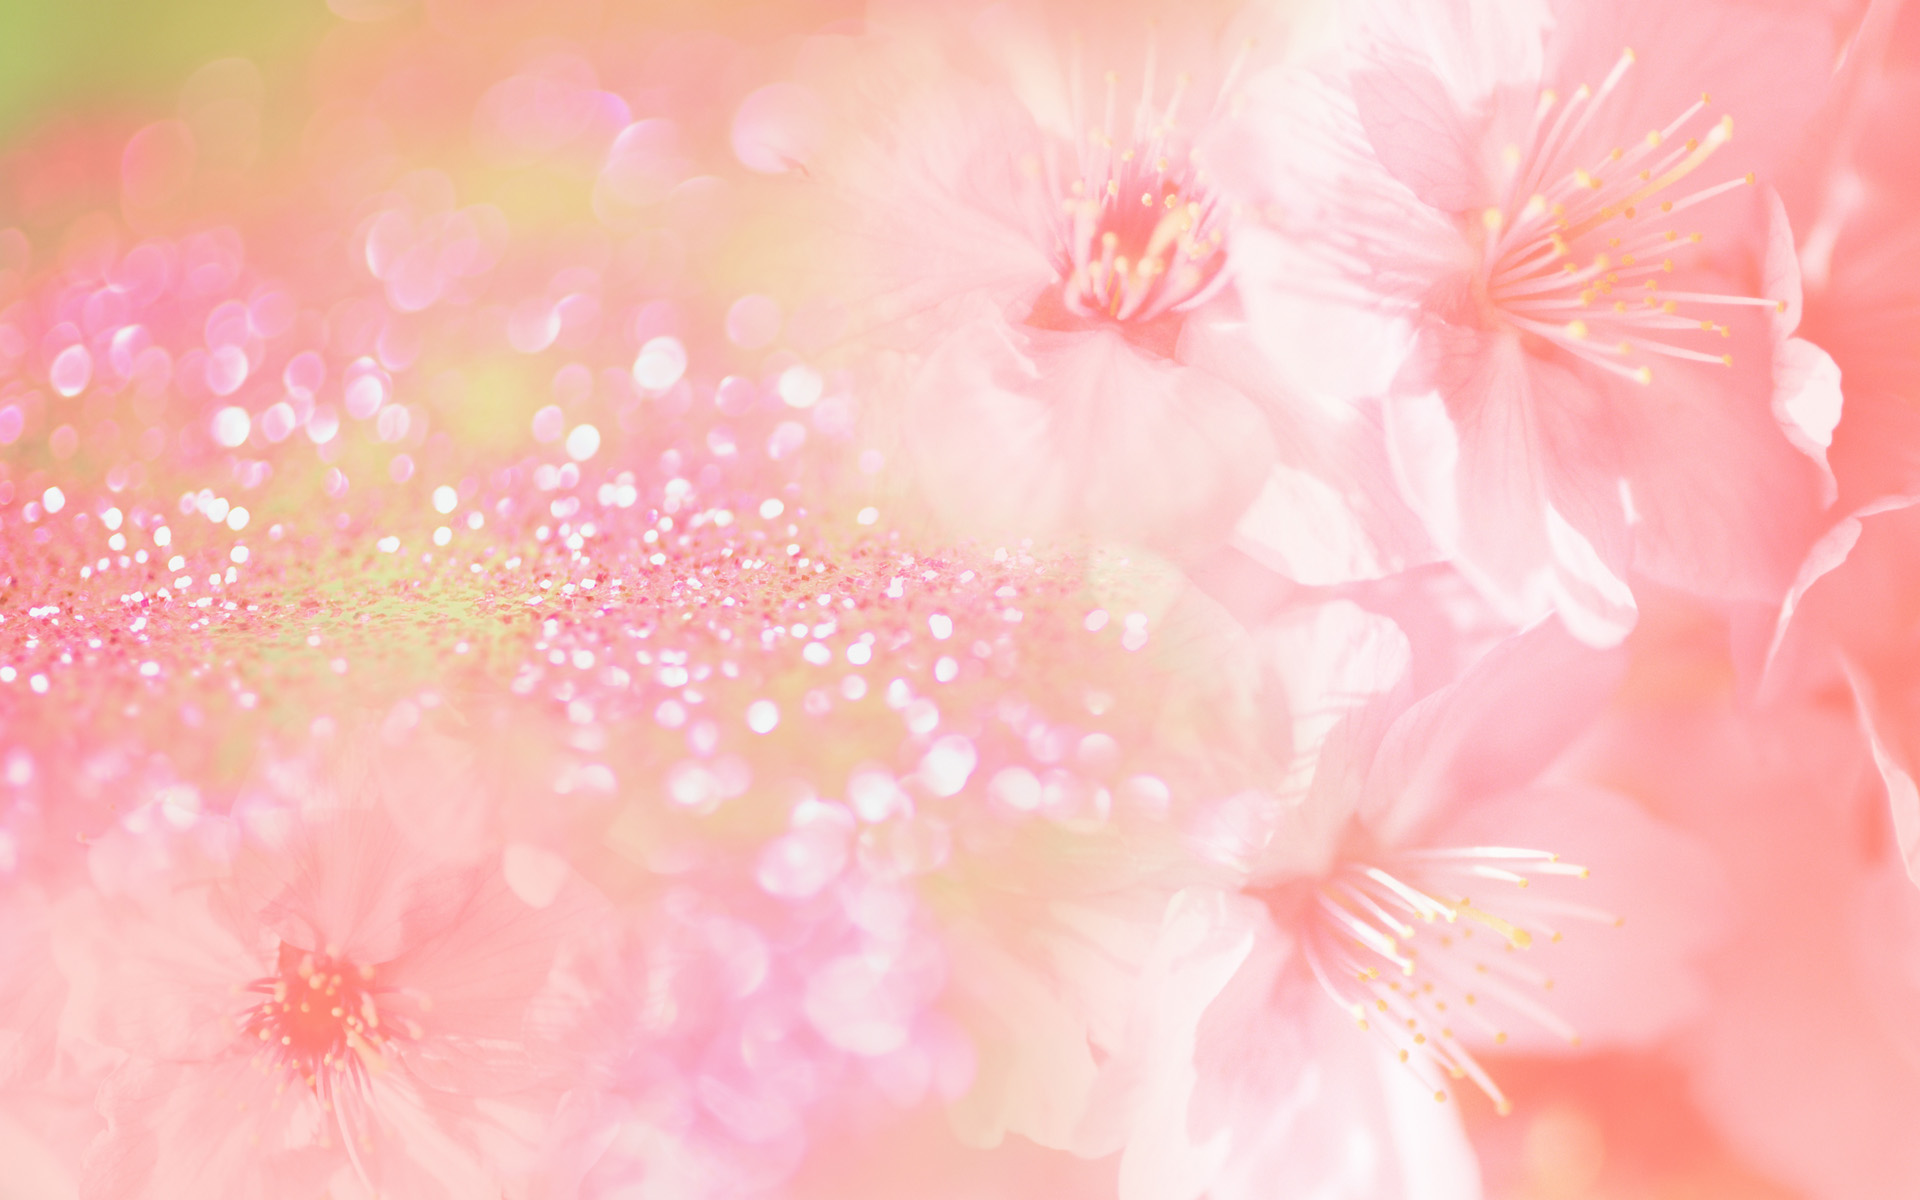 Flowers pink wallpaper widescreen free 4755 wallpaper walldiskpaper flowers pink wallpaper widescreen free mightylinksfo